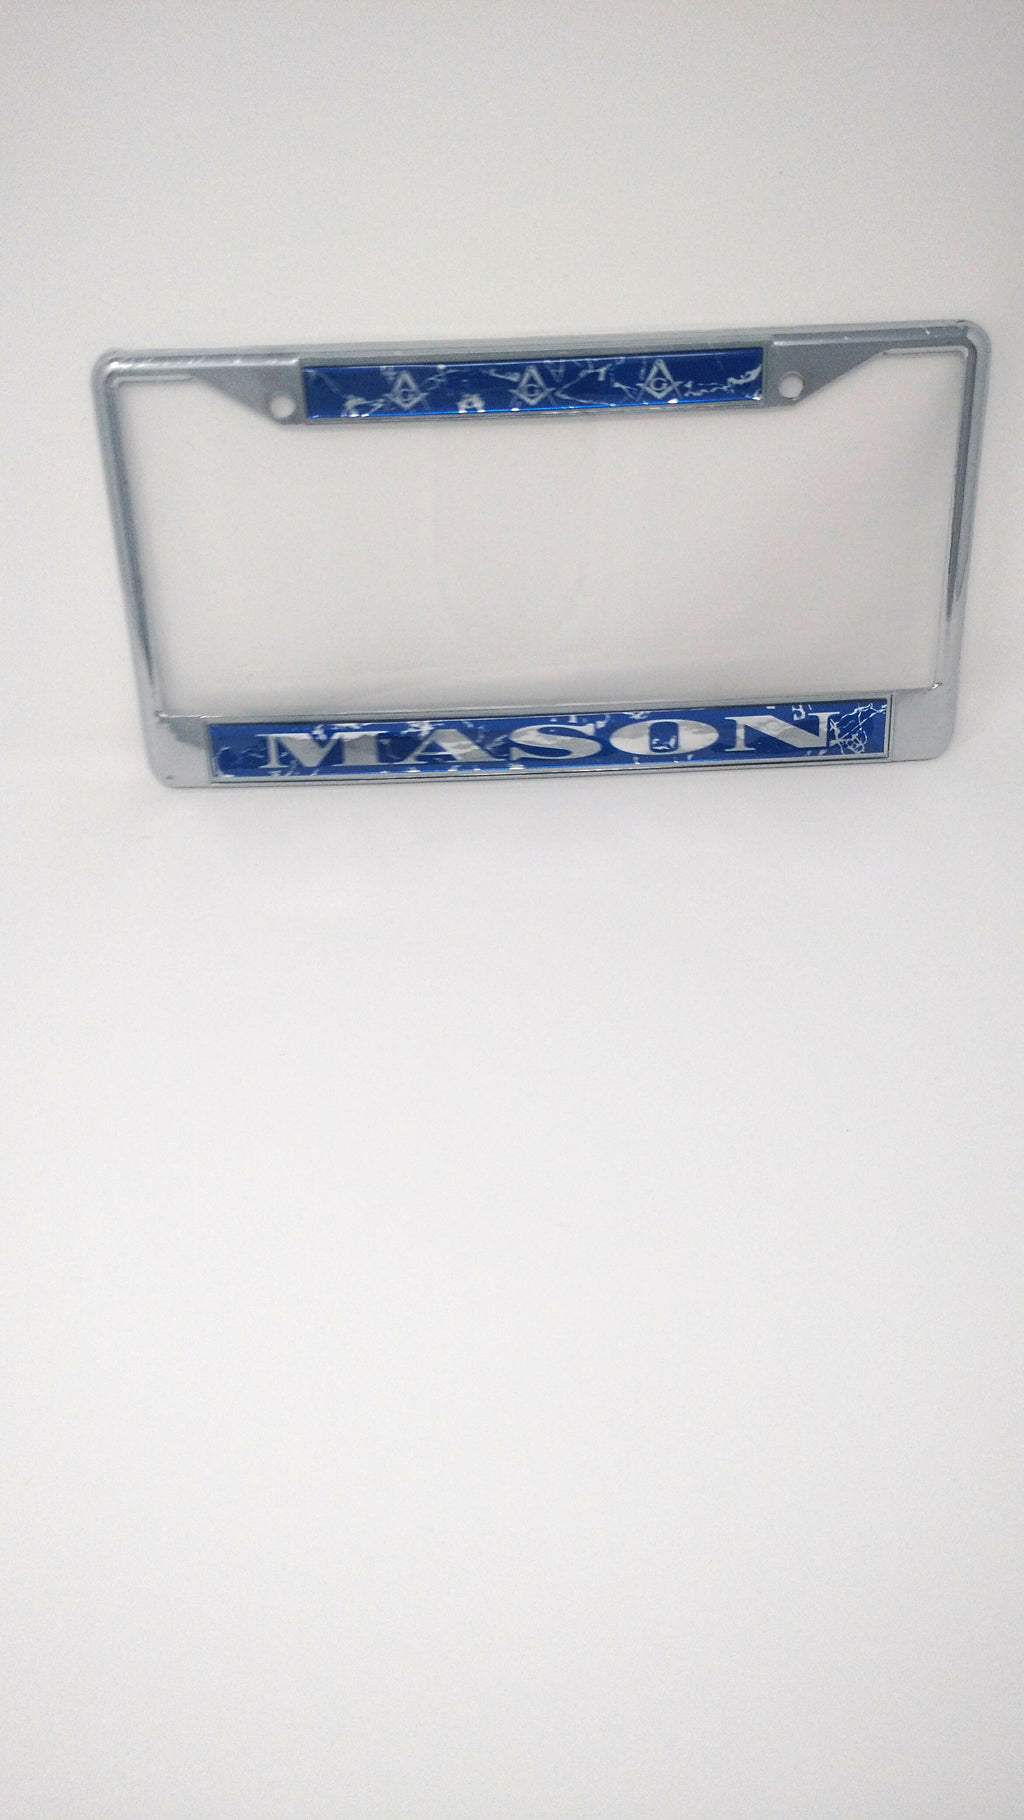 Mason License Plate Frame Silver and Blue